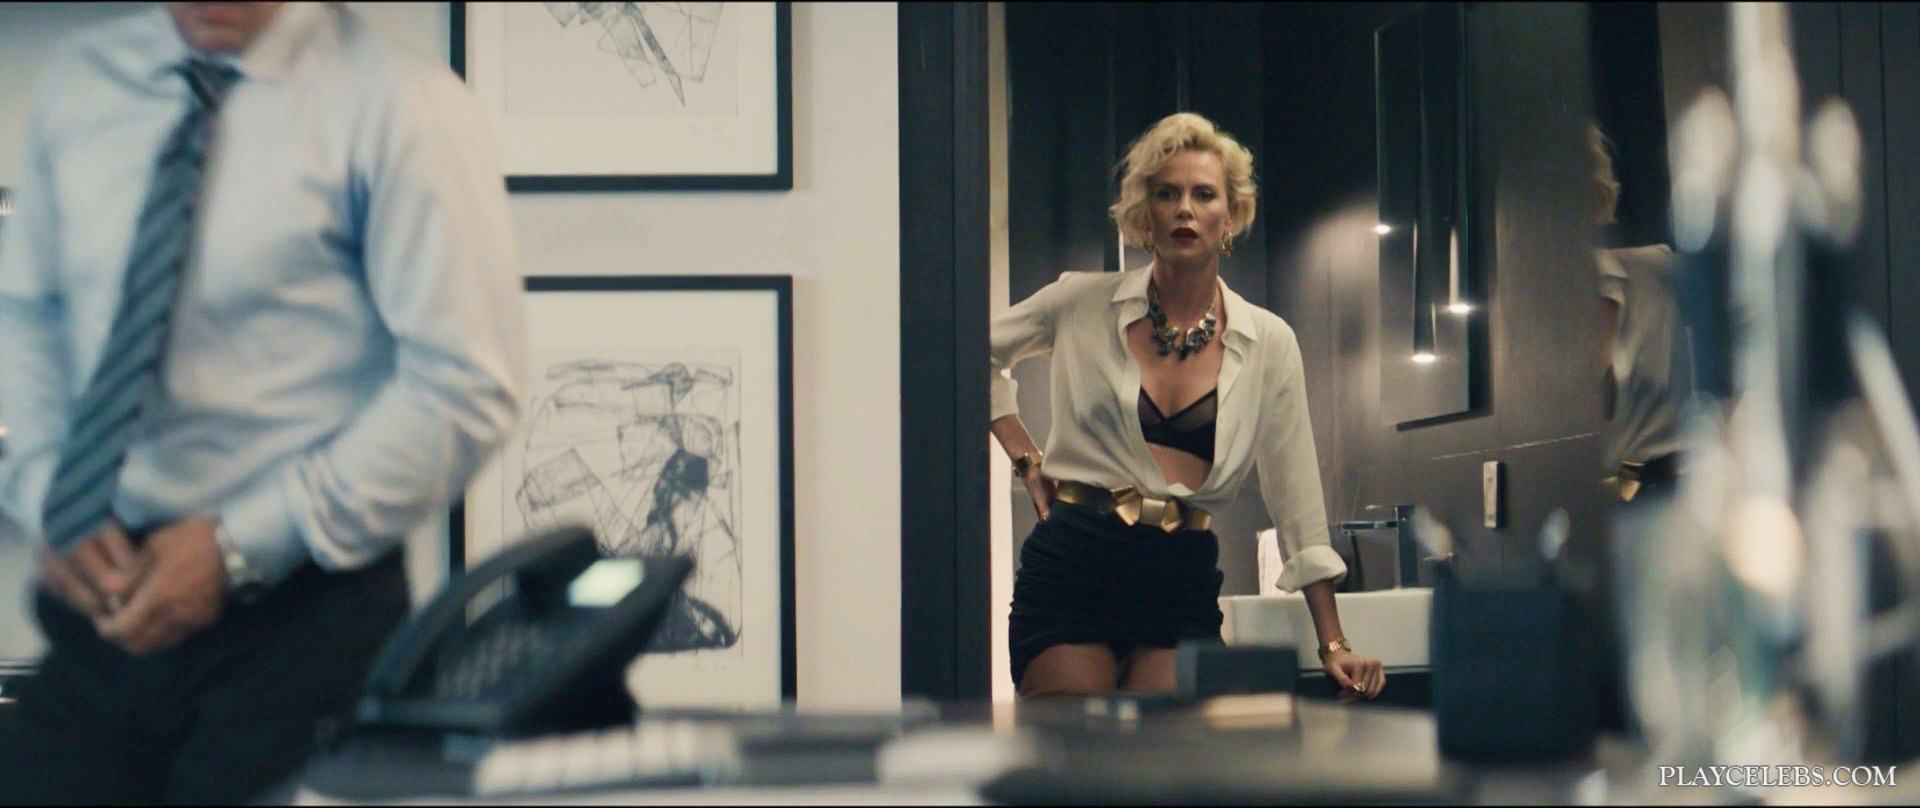 Actress Charlize Theron Wild Sex From Behind In Gringo (2018)